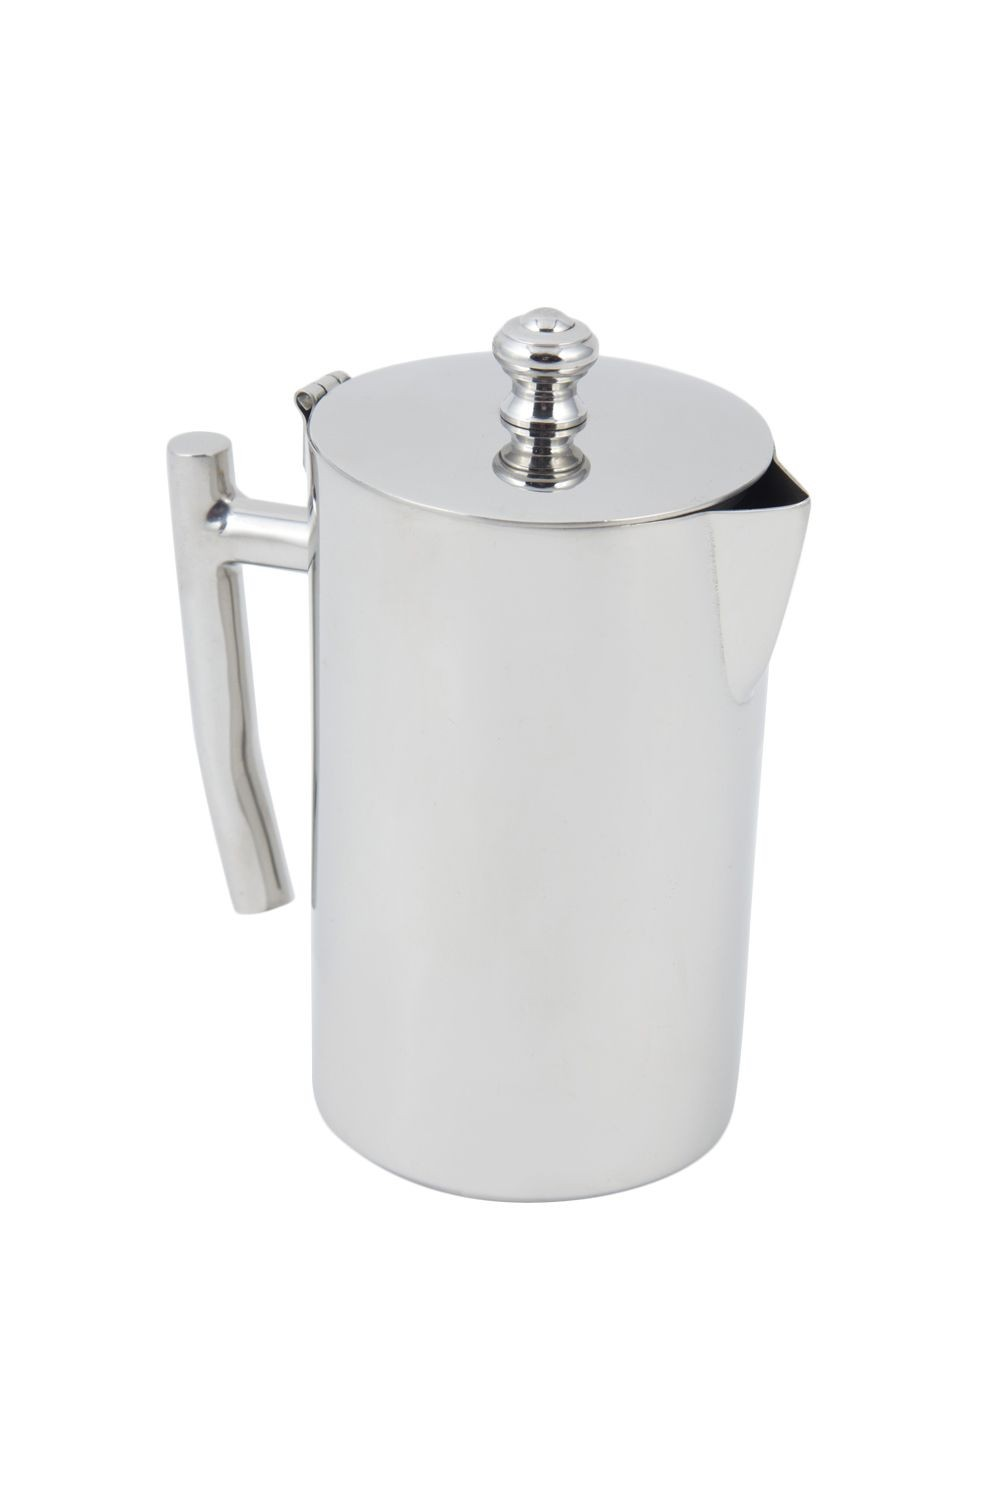 Bon Chef 61308 Empire Collection Stainless Steel Milk Pot, 9 oz.